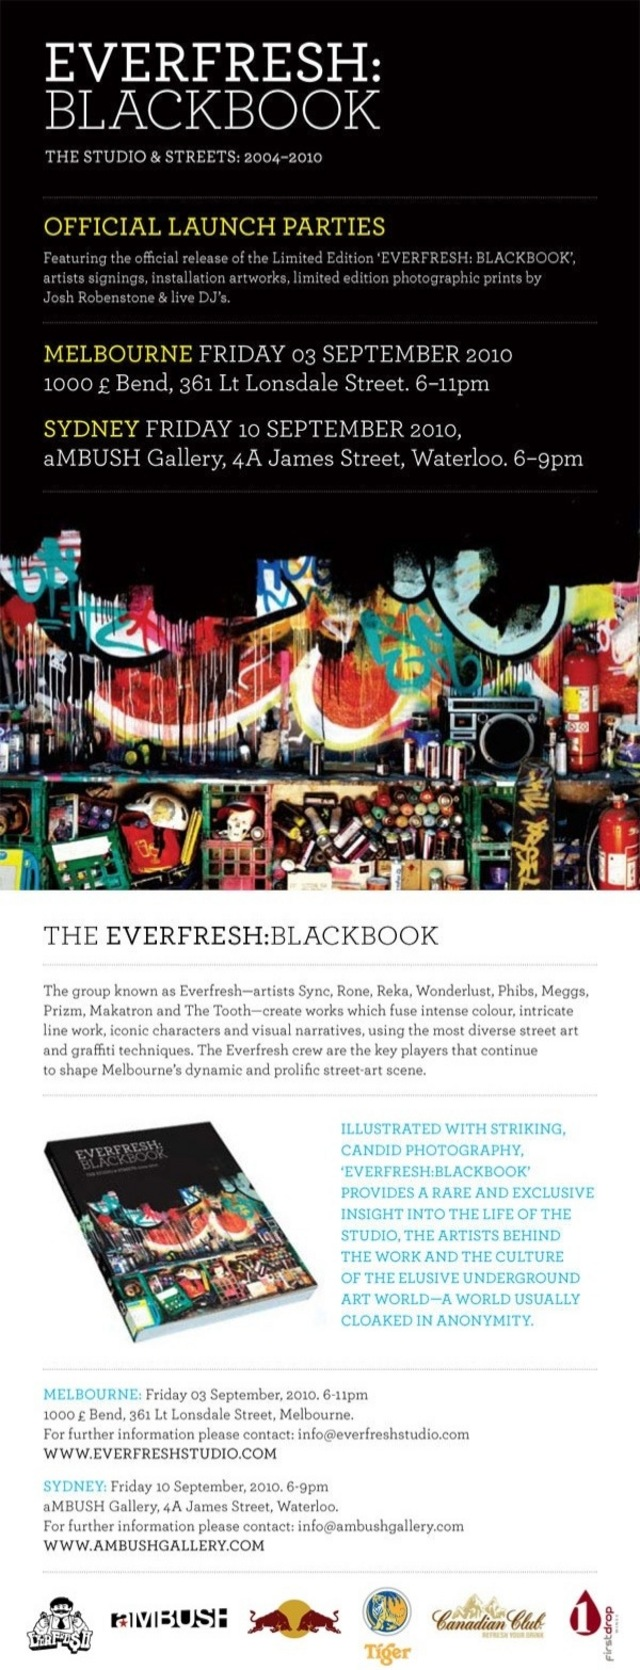 EVERFRESH Tokyo Blackbook Launch Party